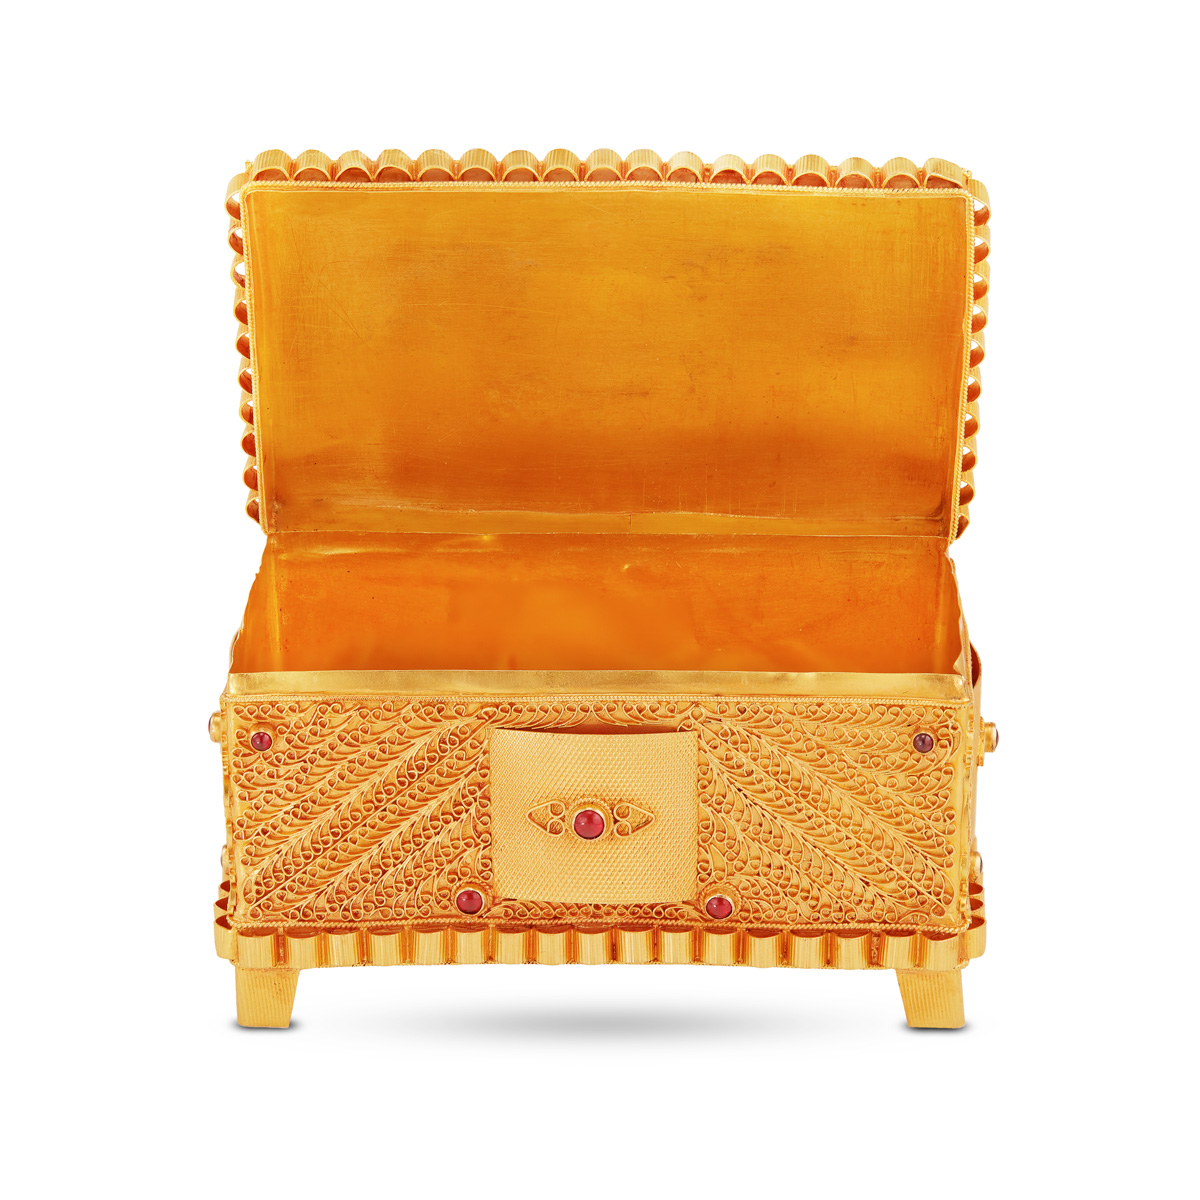 Treasure Box in Gold!